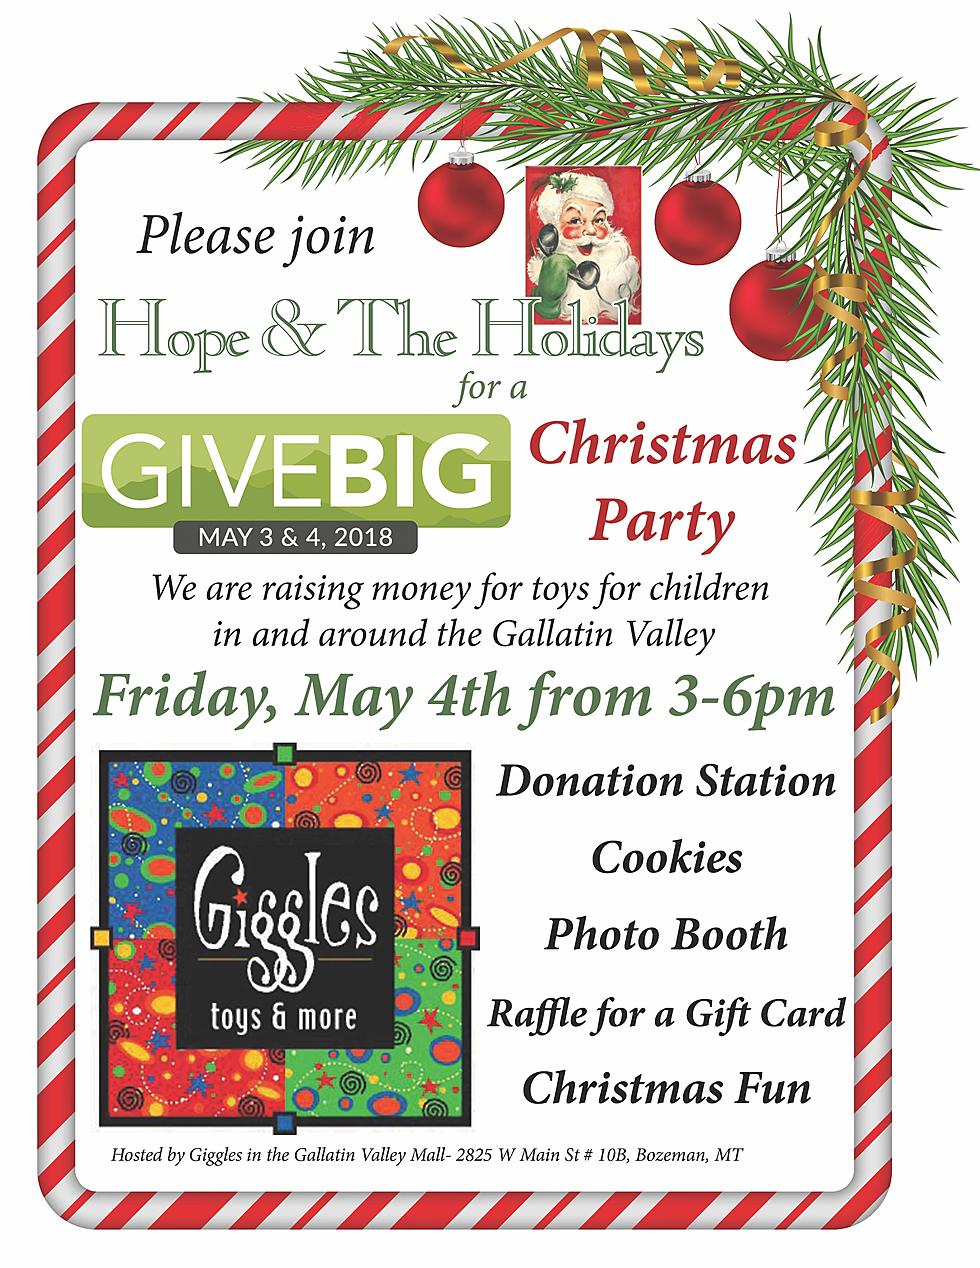 Hope & The Holidays Give Big Christmas Party